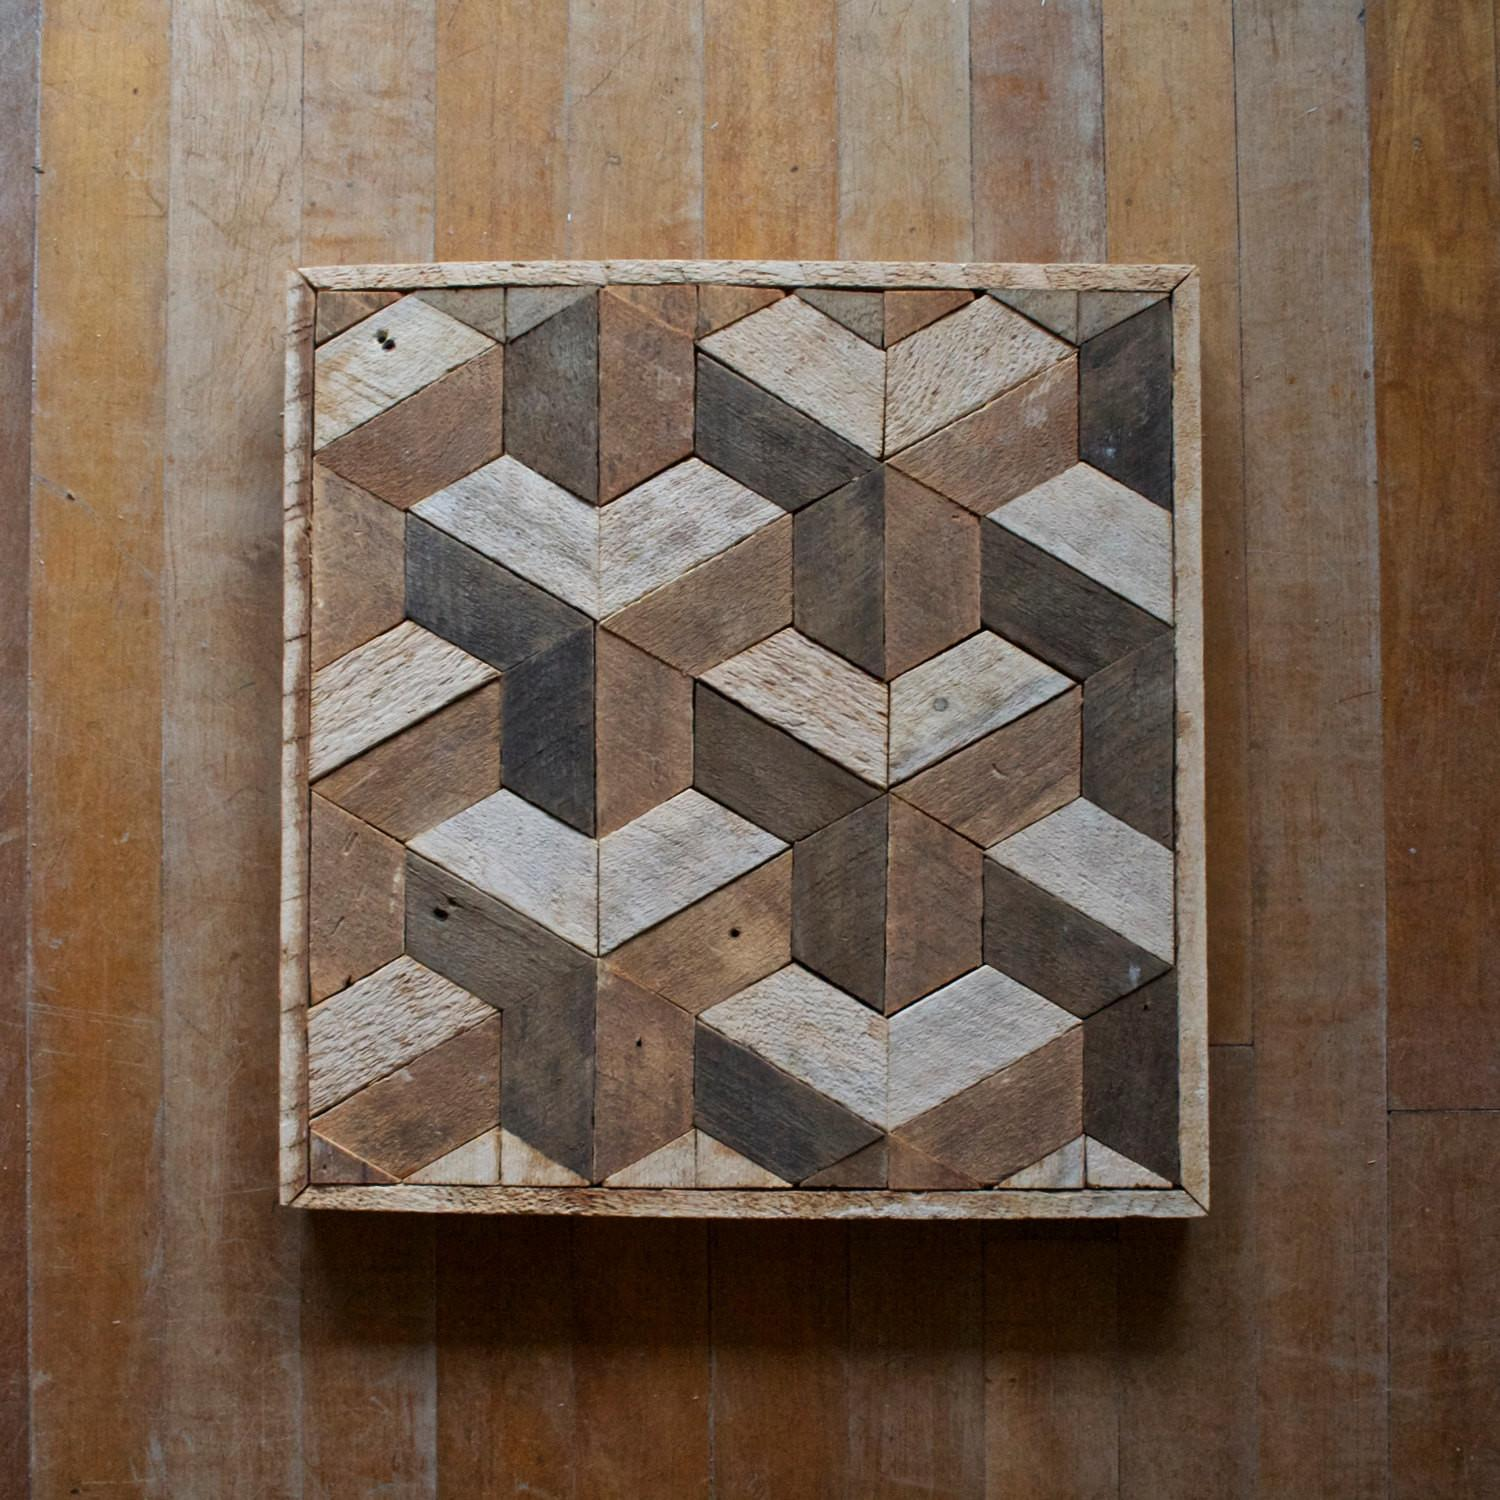 Reclaimed Wood Wall Art Decor Lath Geometric Pattern